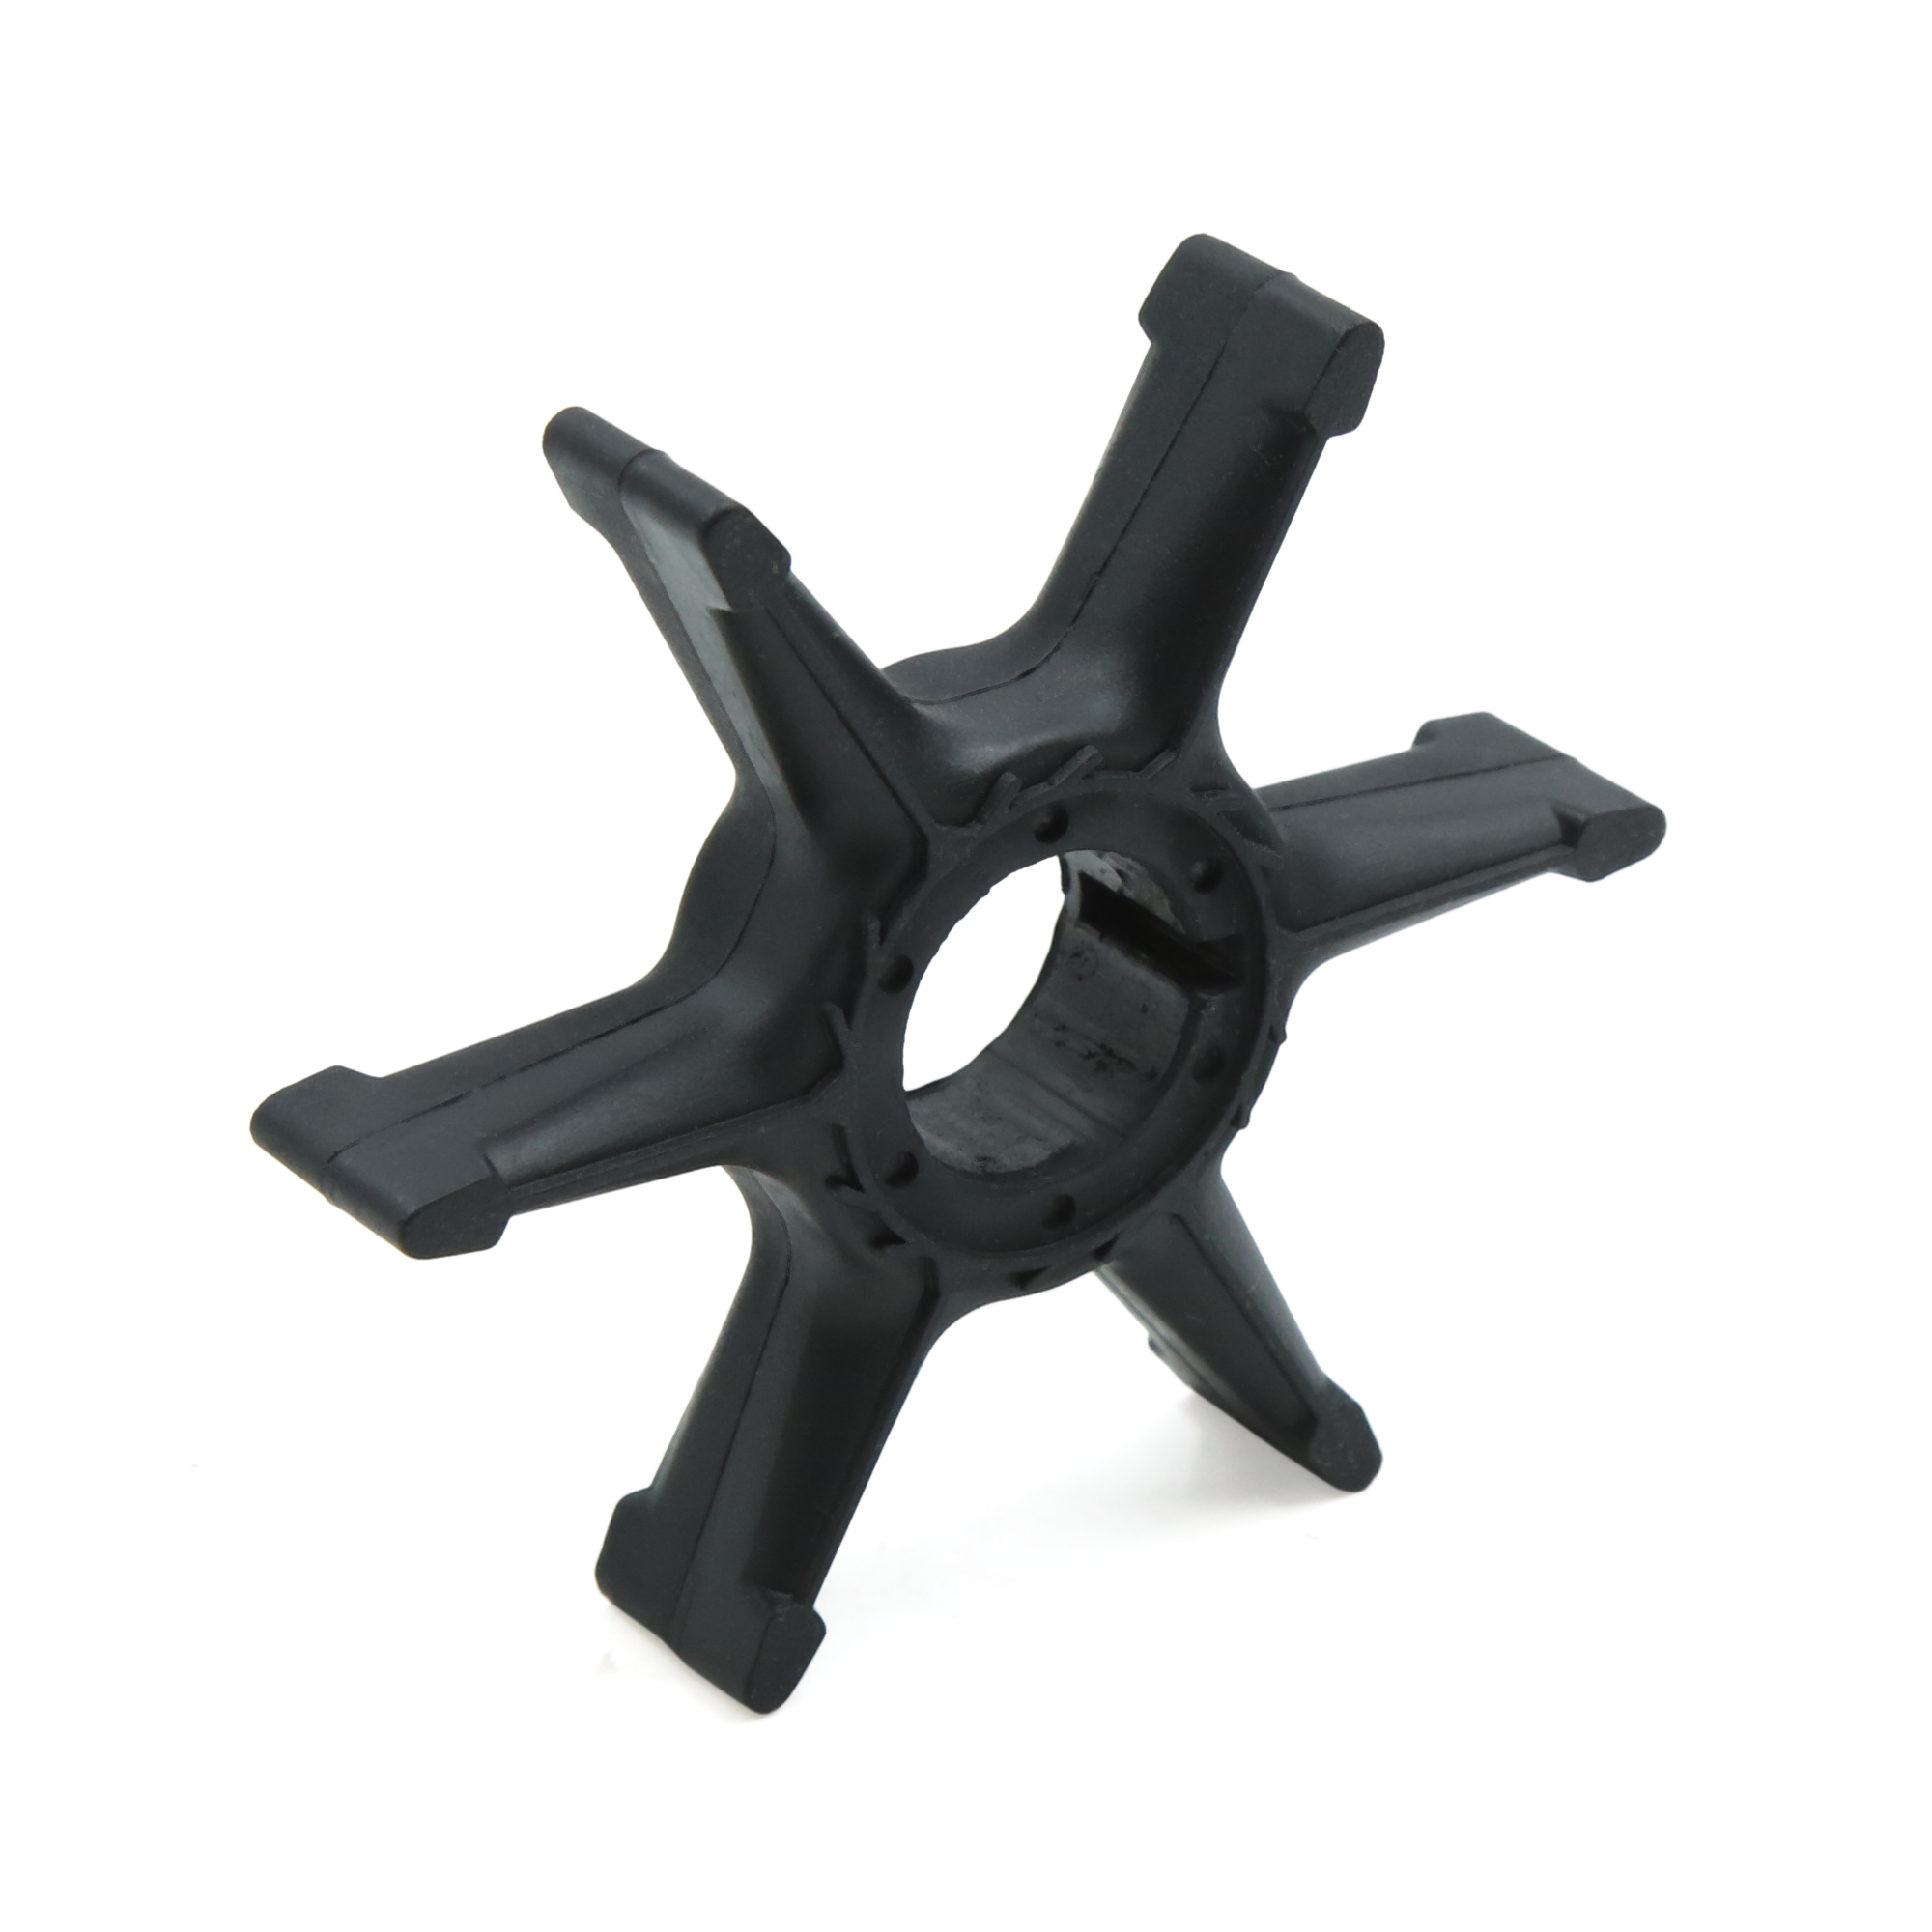 Replaces 47-84797M Mariner 20C 6A9 20hp Outboard Engine Water Pump Impeller